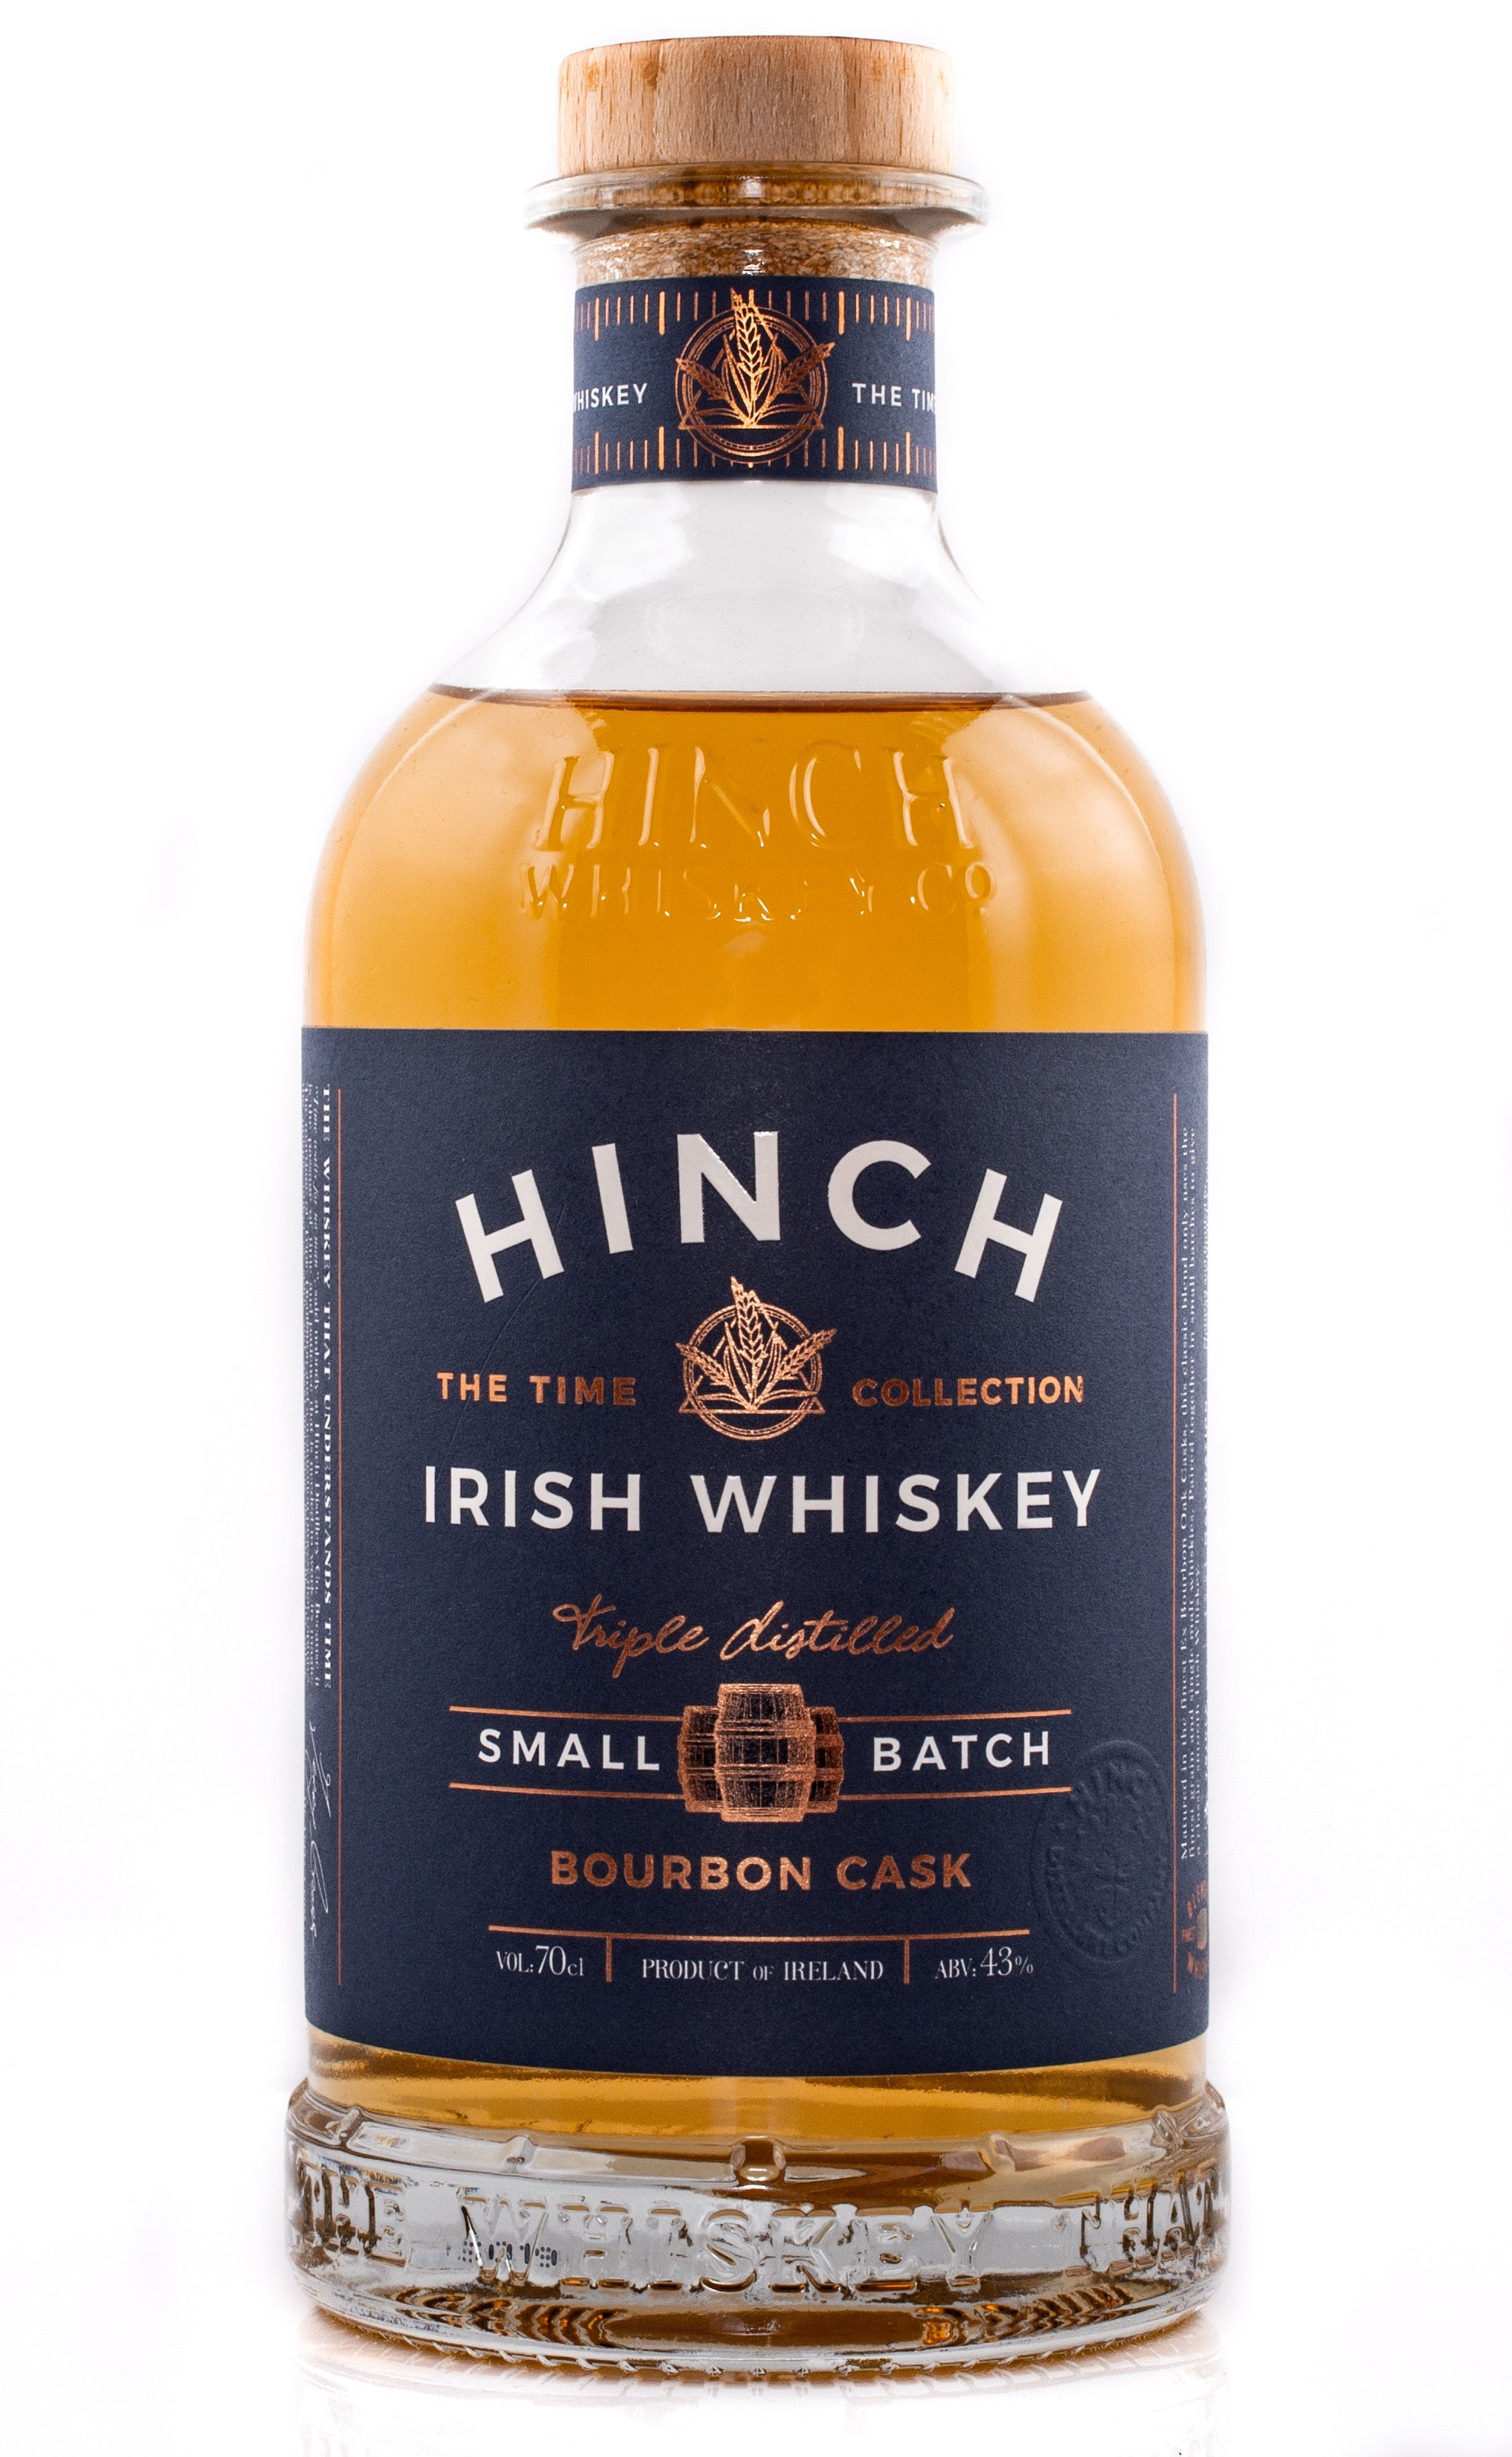 Hinch Small Batch Bourbon Cask 43% abv 70cl